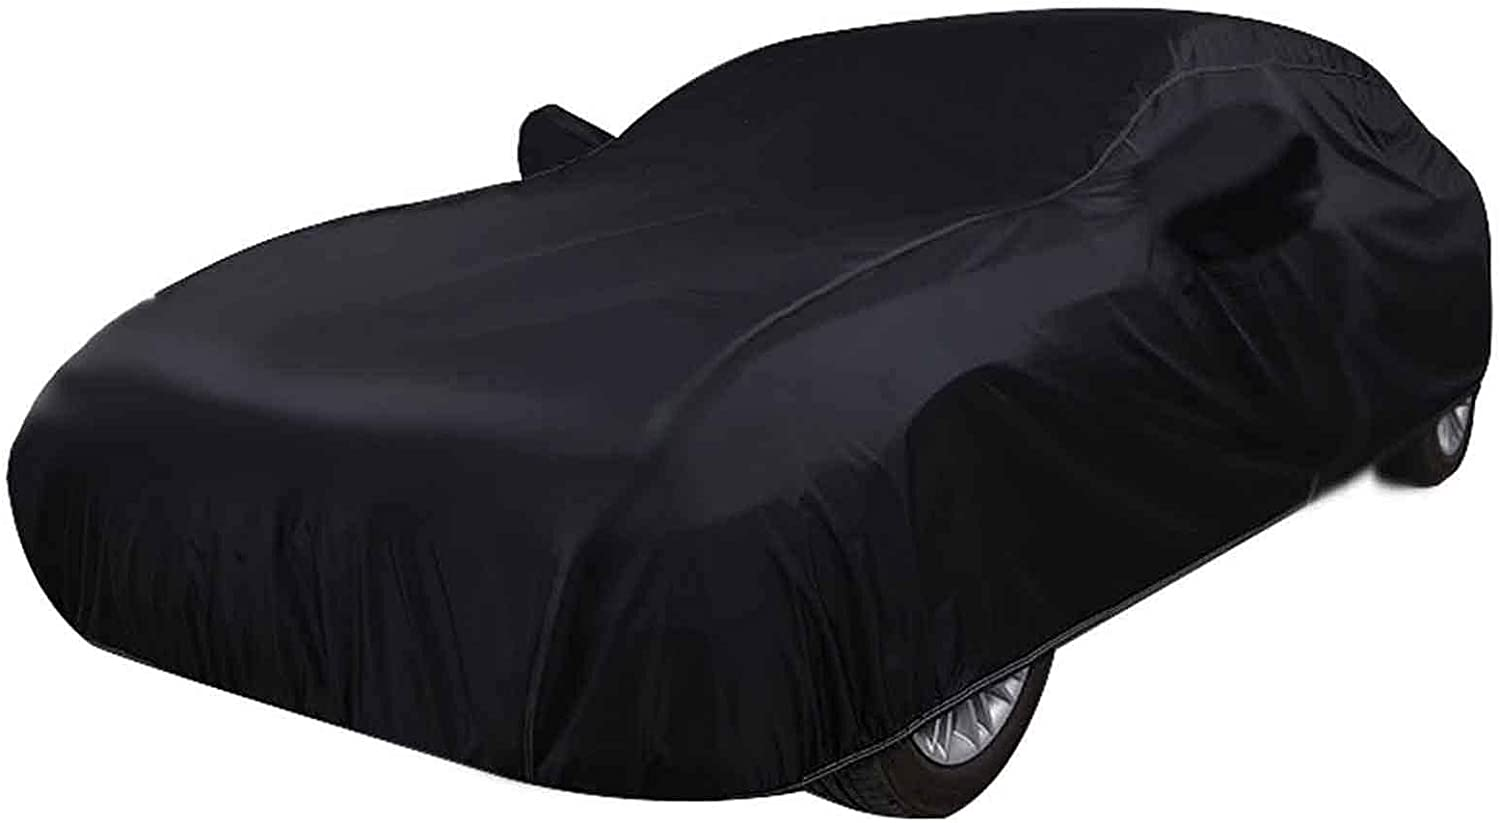 QERFSD Car Cover Compatible with Dust Land Discovery Tampa Same day shipping Mall Rover Sport